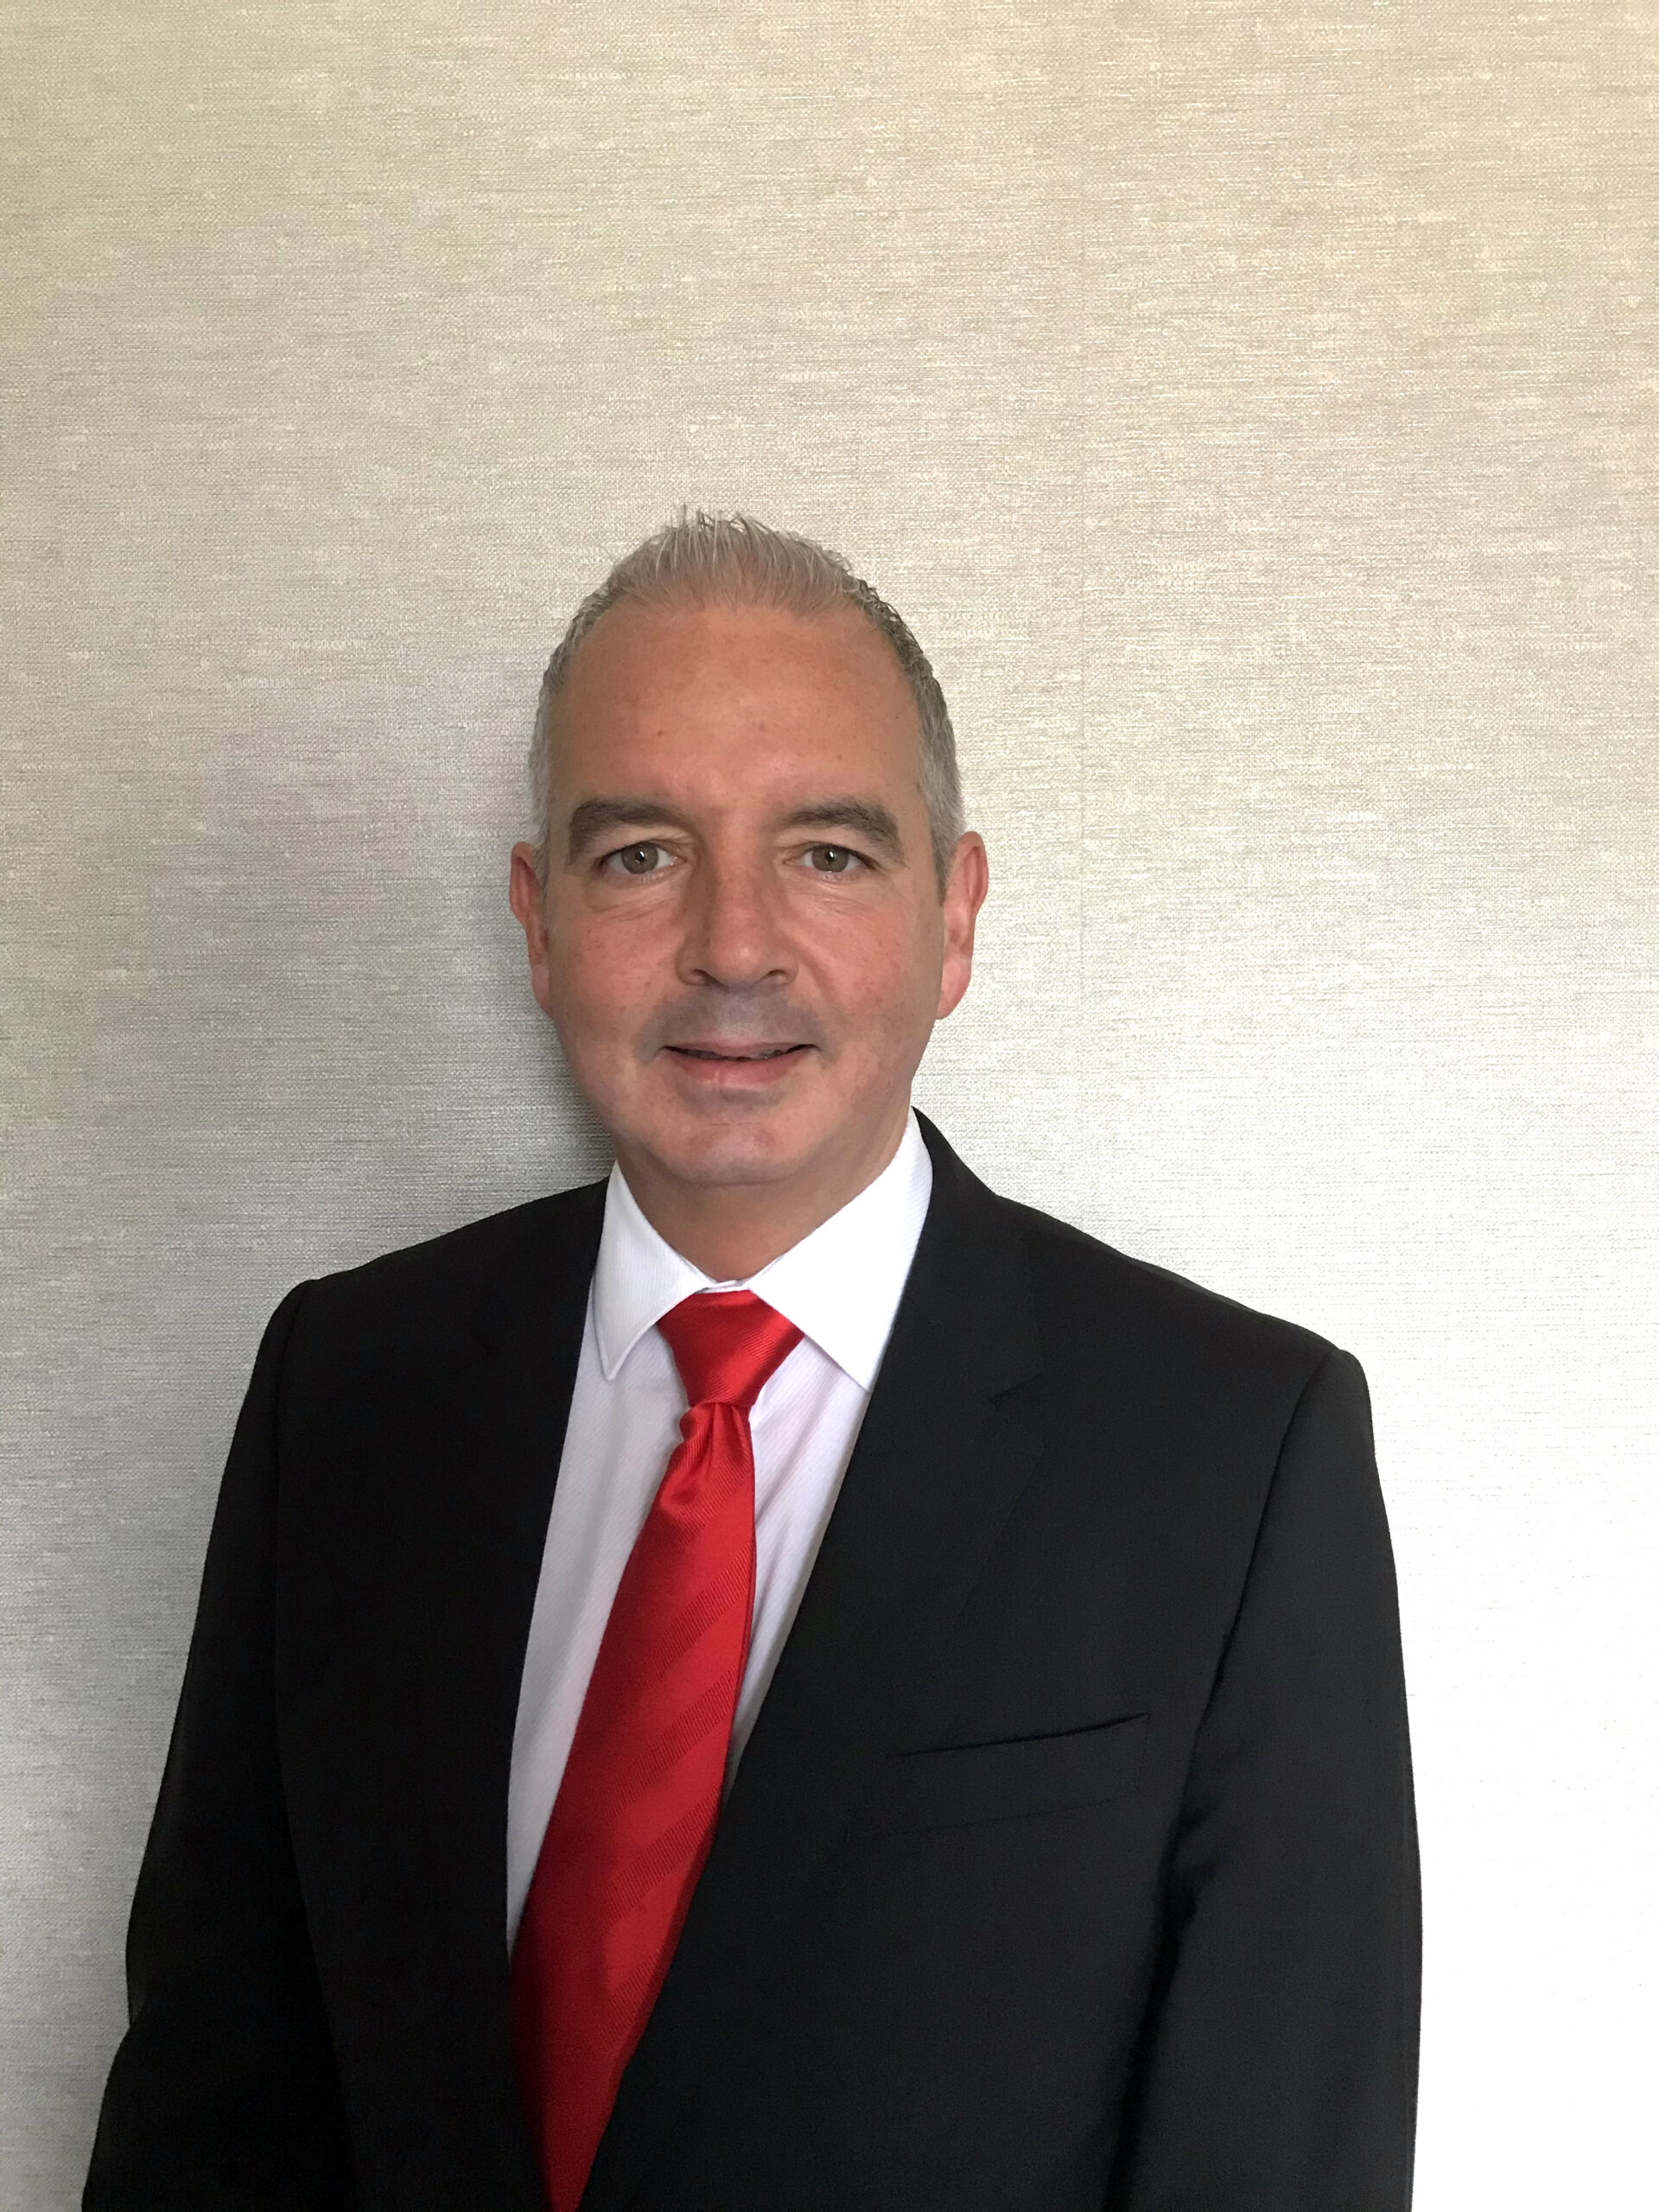 <strong><strong>Craig Mitchell – Regional Sales Manage</strong>r at Bucher Municipal</strong><br>